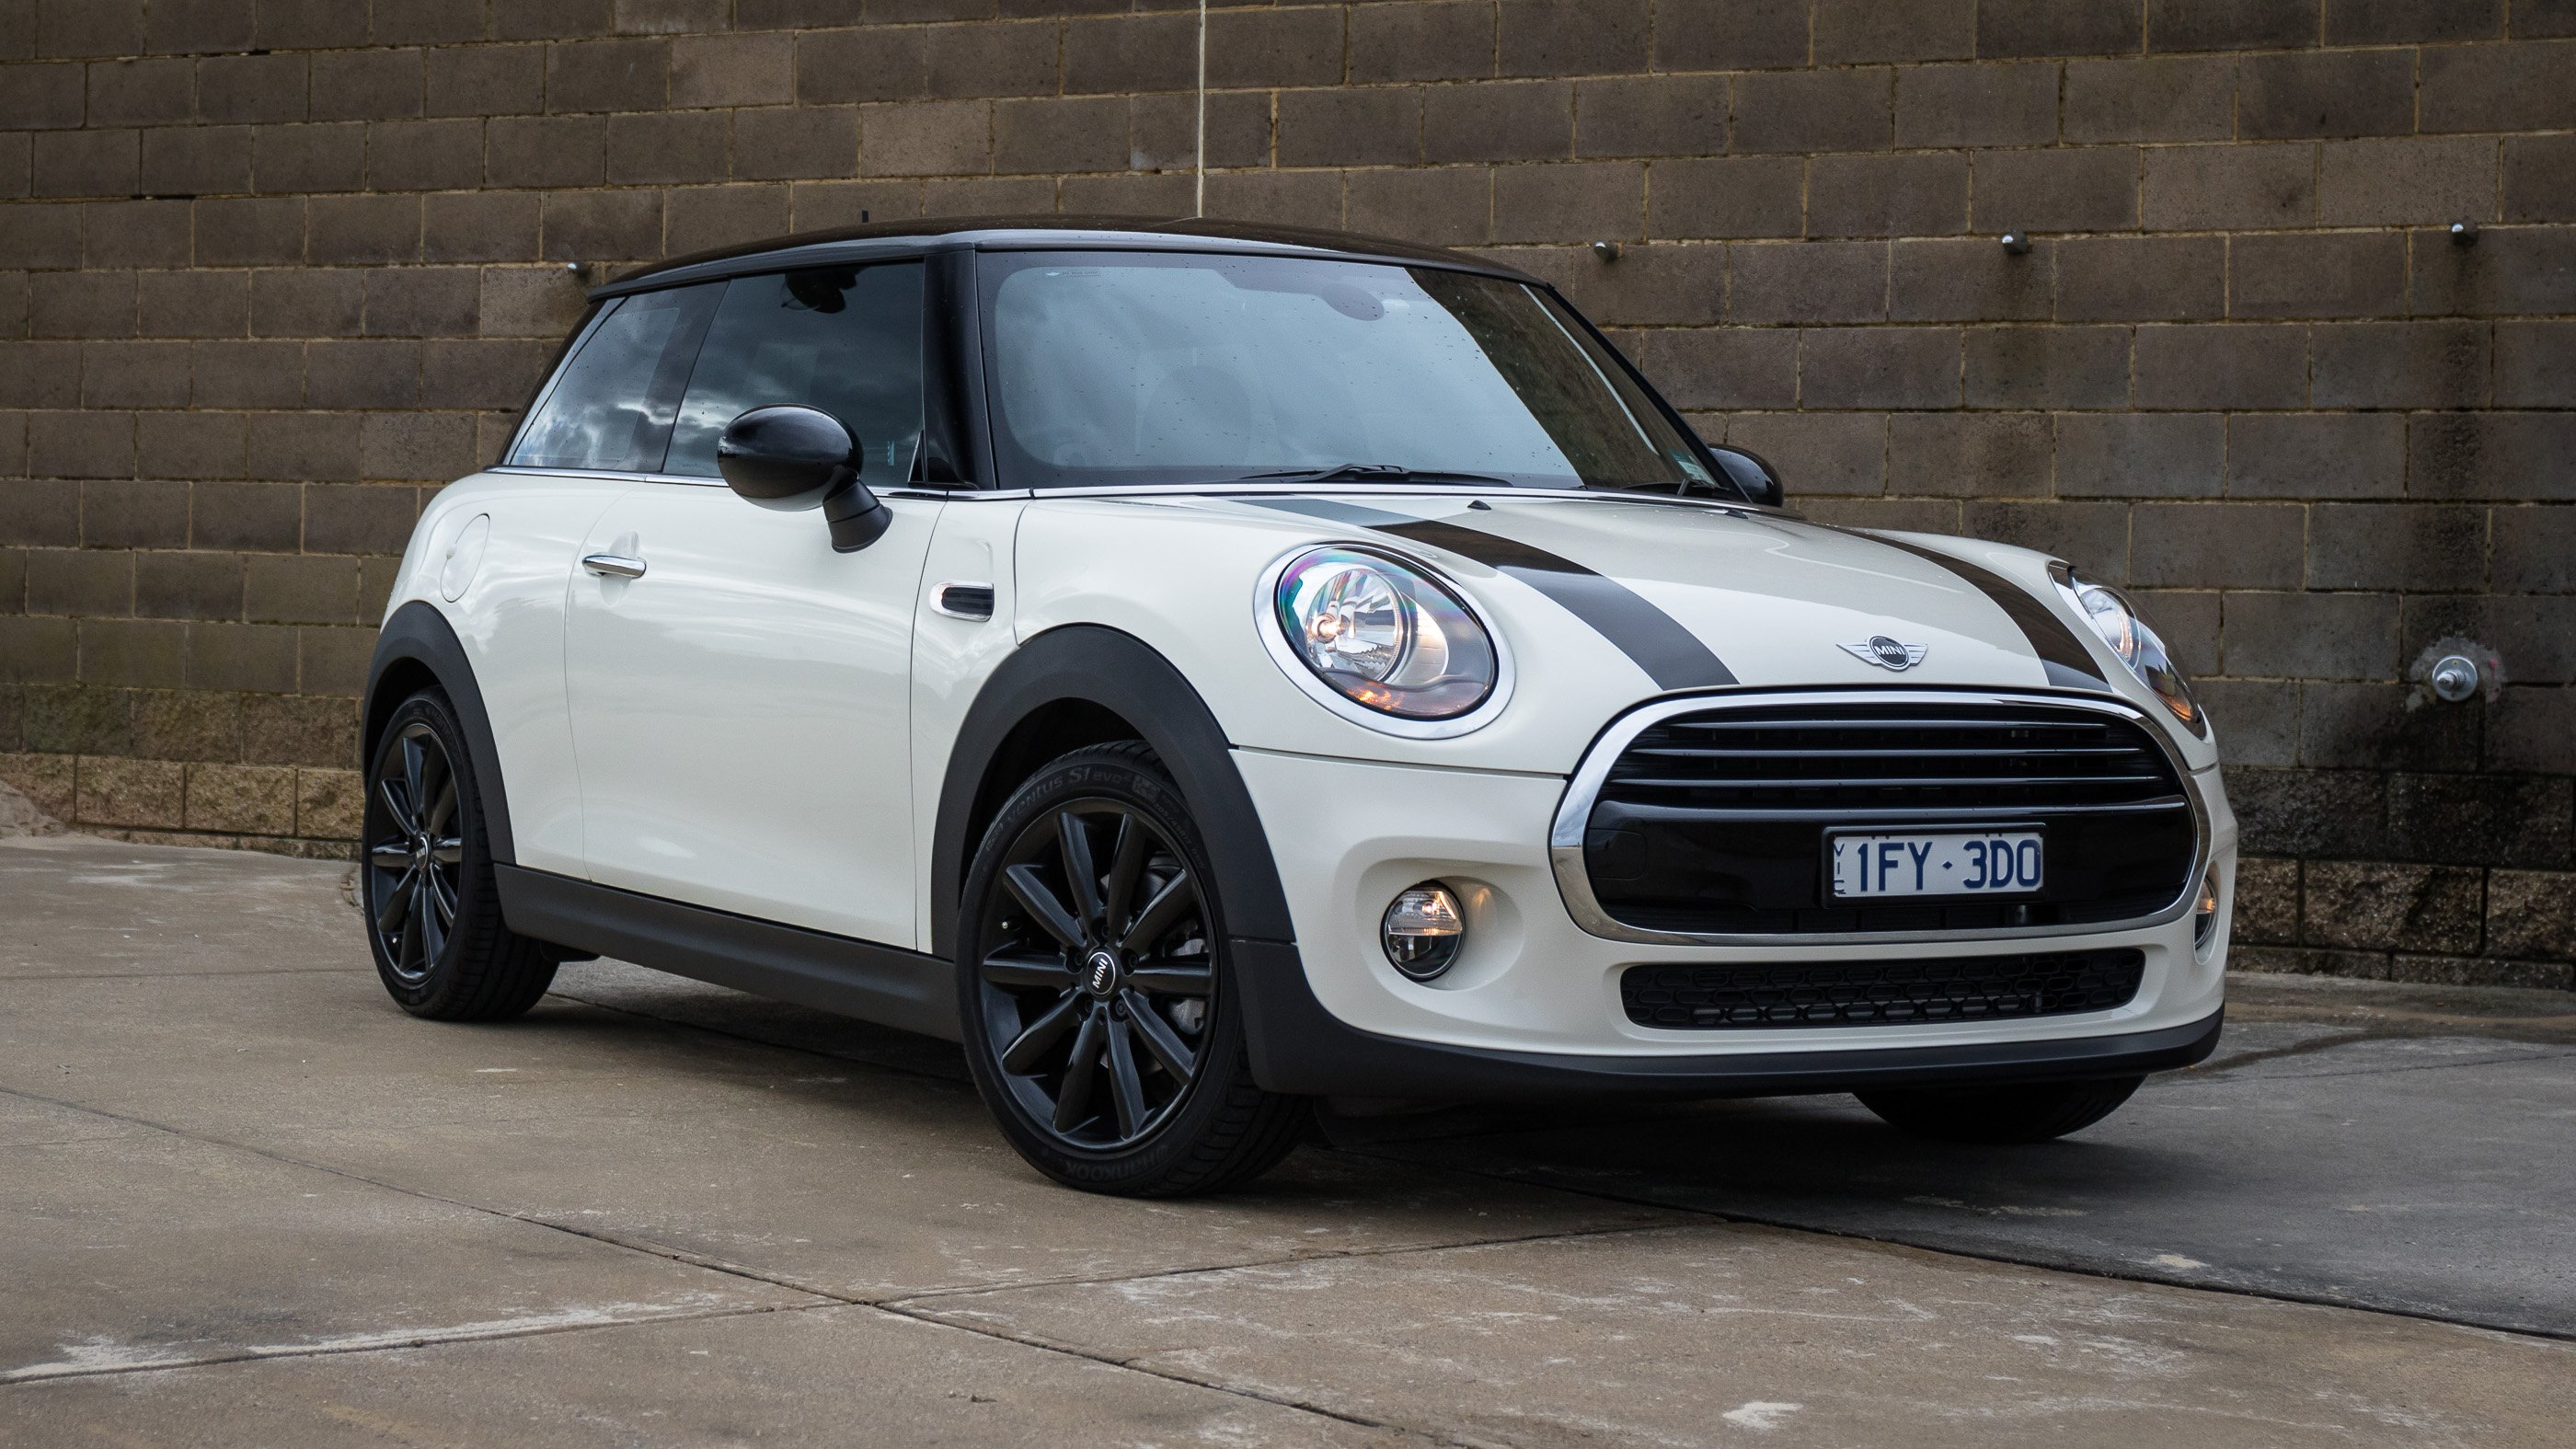 2016 mini cooper review photos caradvice. Black Bedroom Furniture Sets. Home Design Ideas